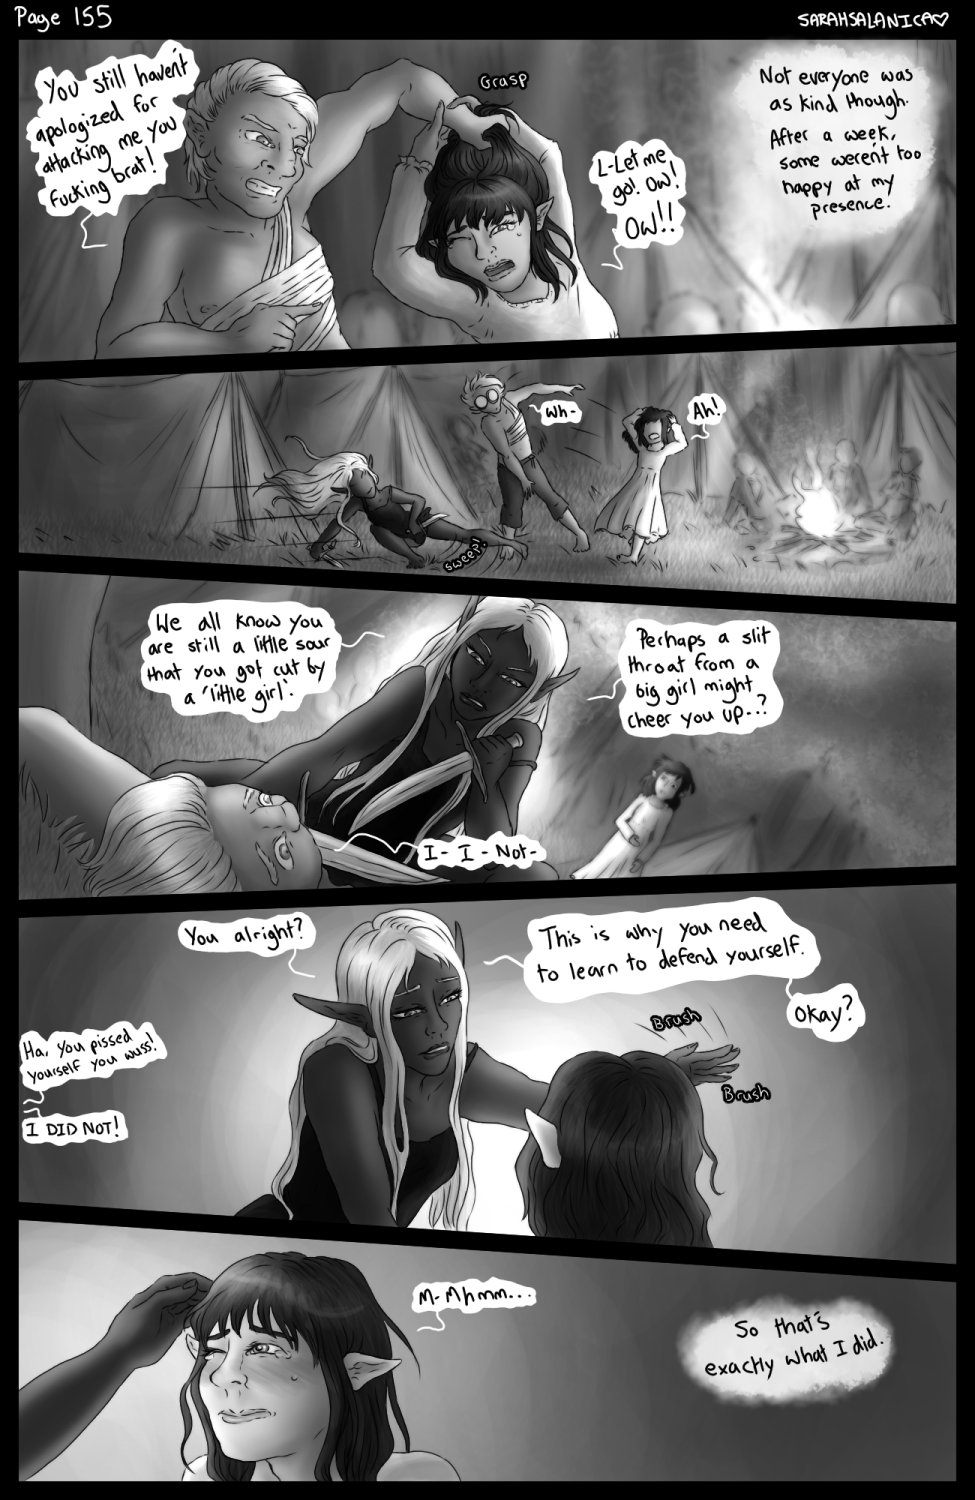 Can('t) Buy Love- Chapter 4 Page 155